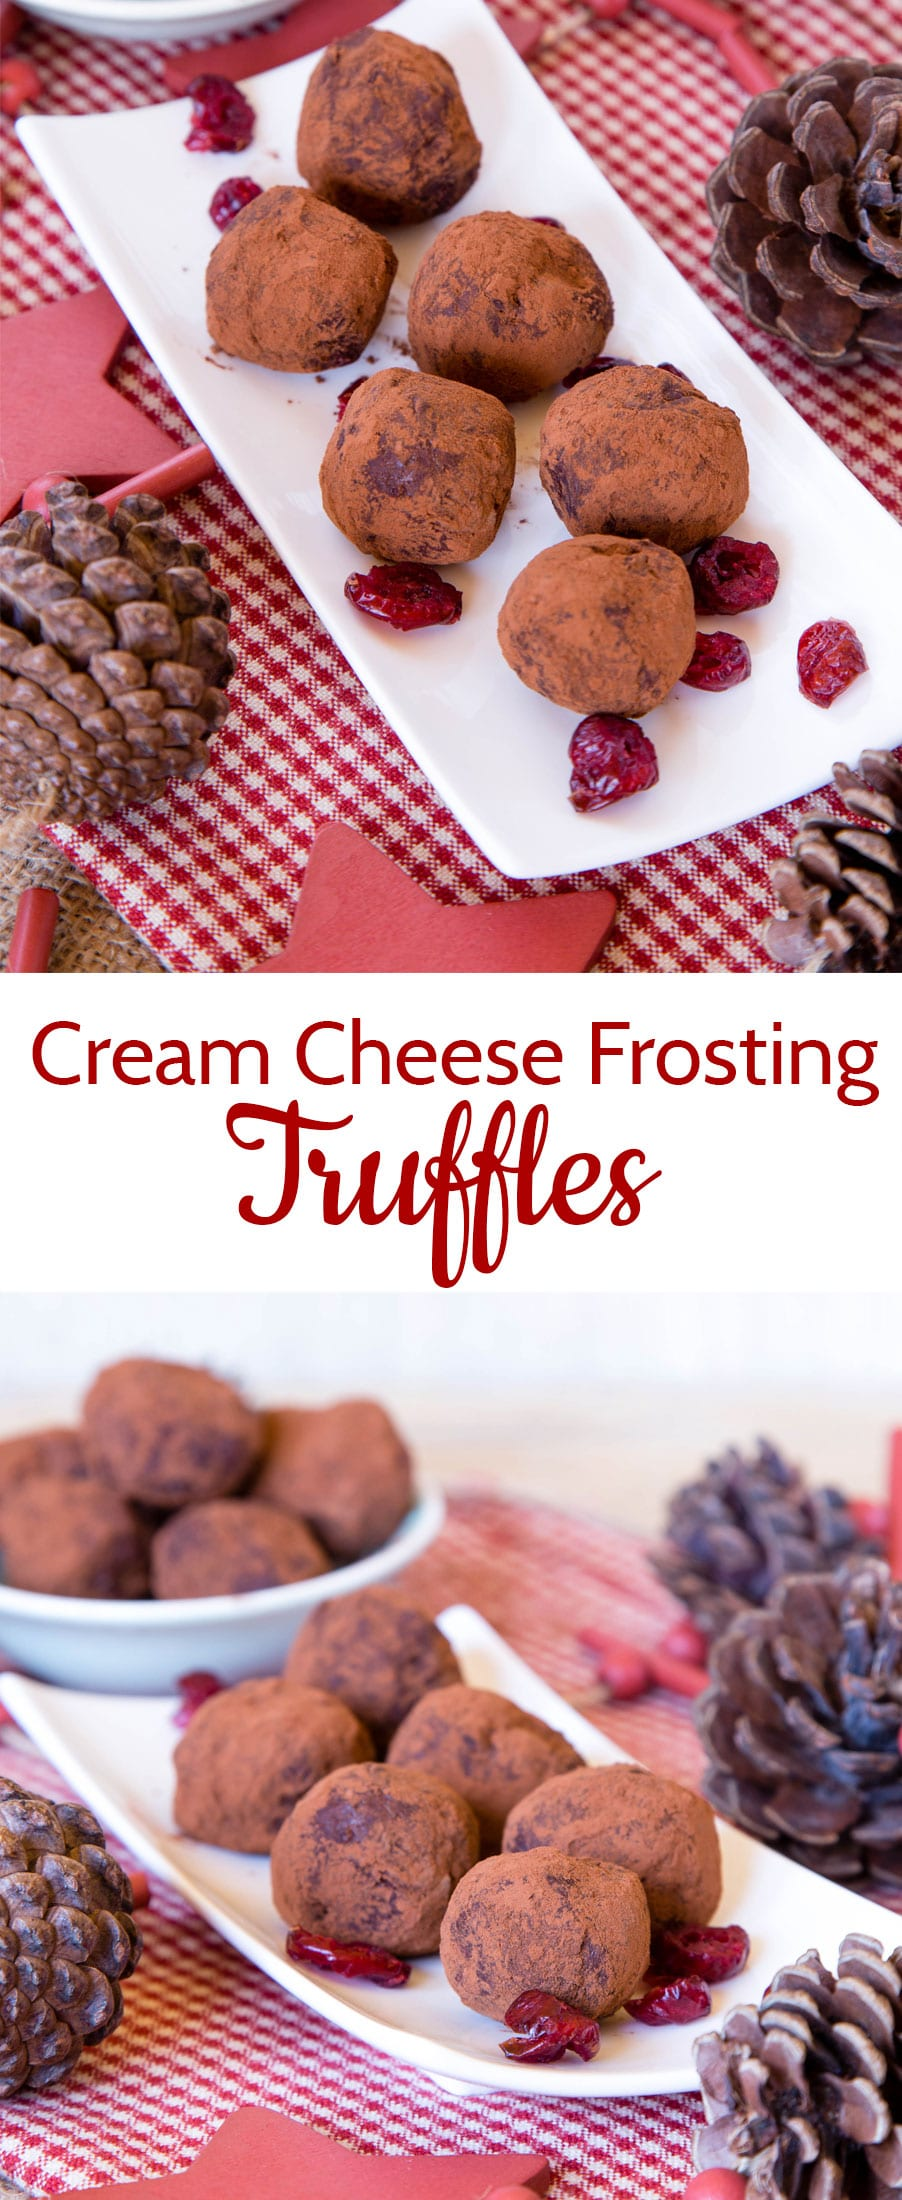 These chocolate truffles are quick and easy to make with leftover cream cheese frosting